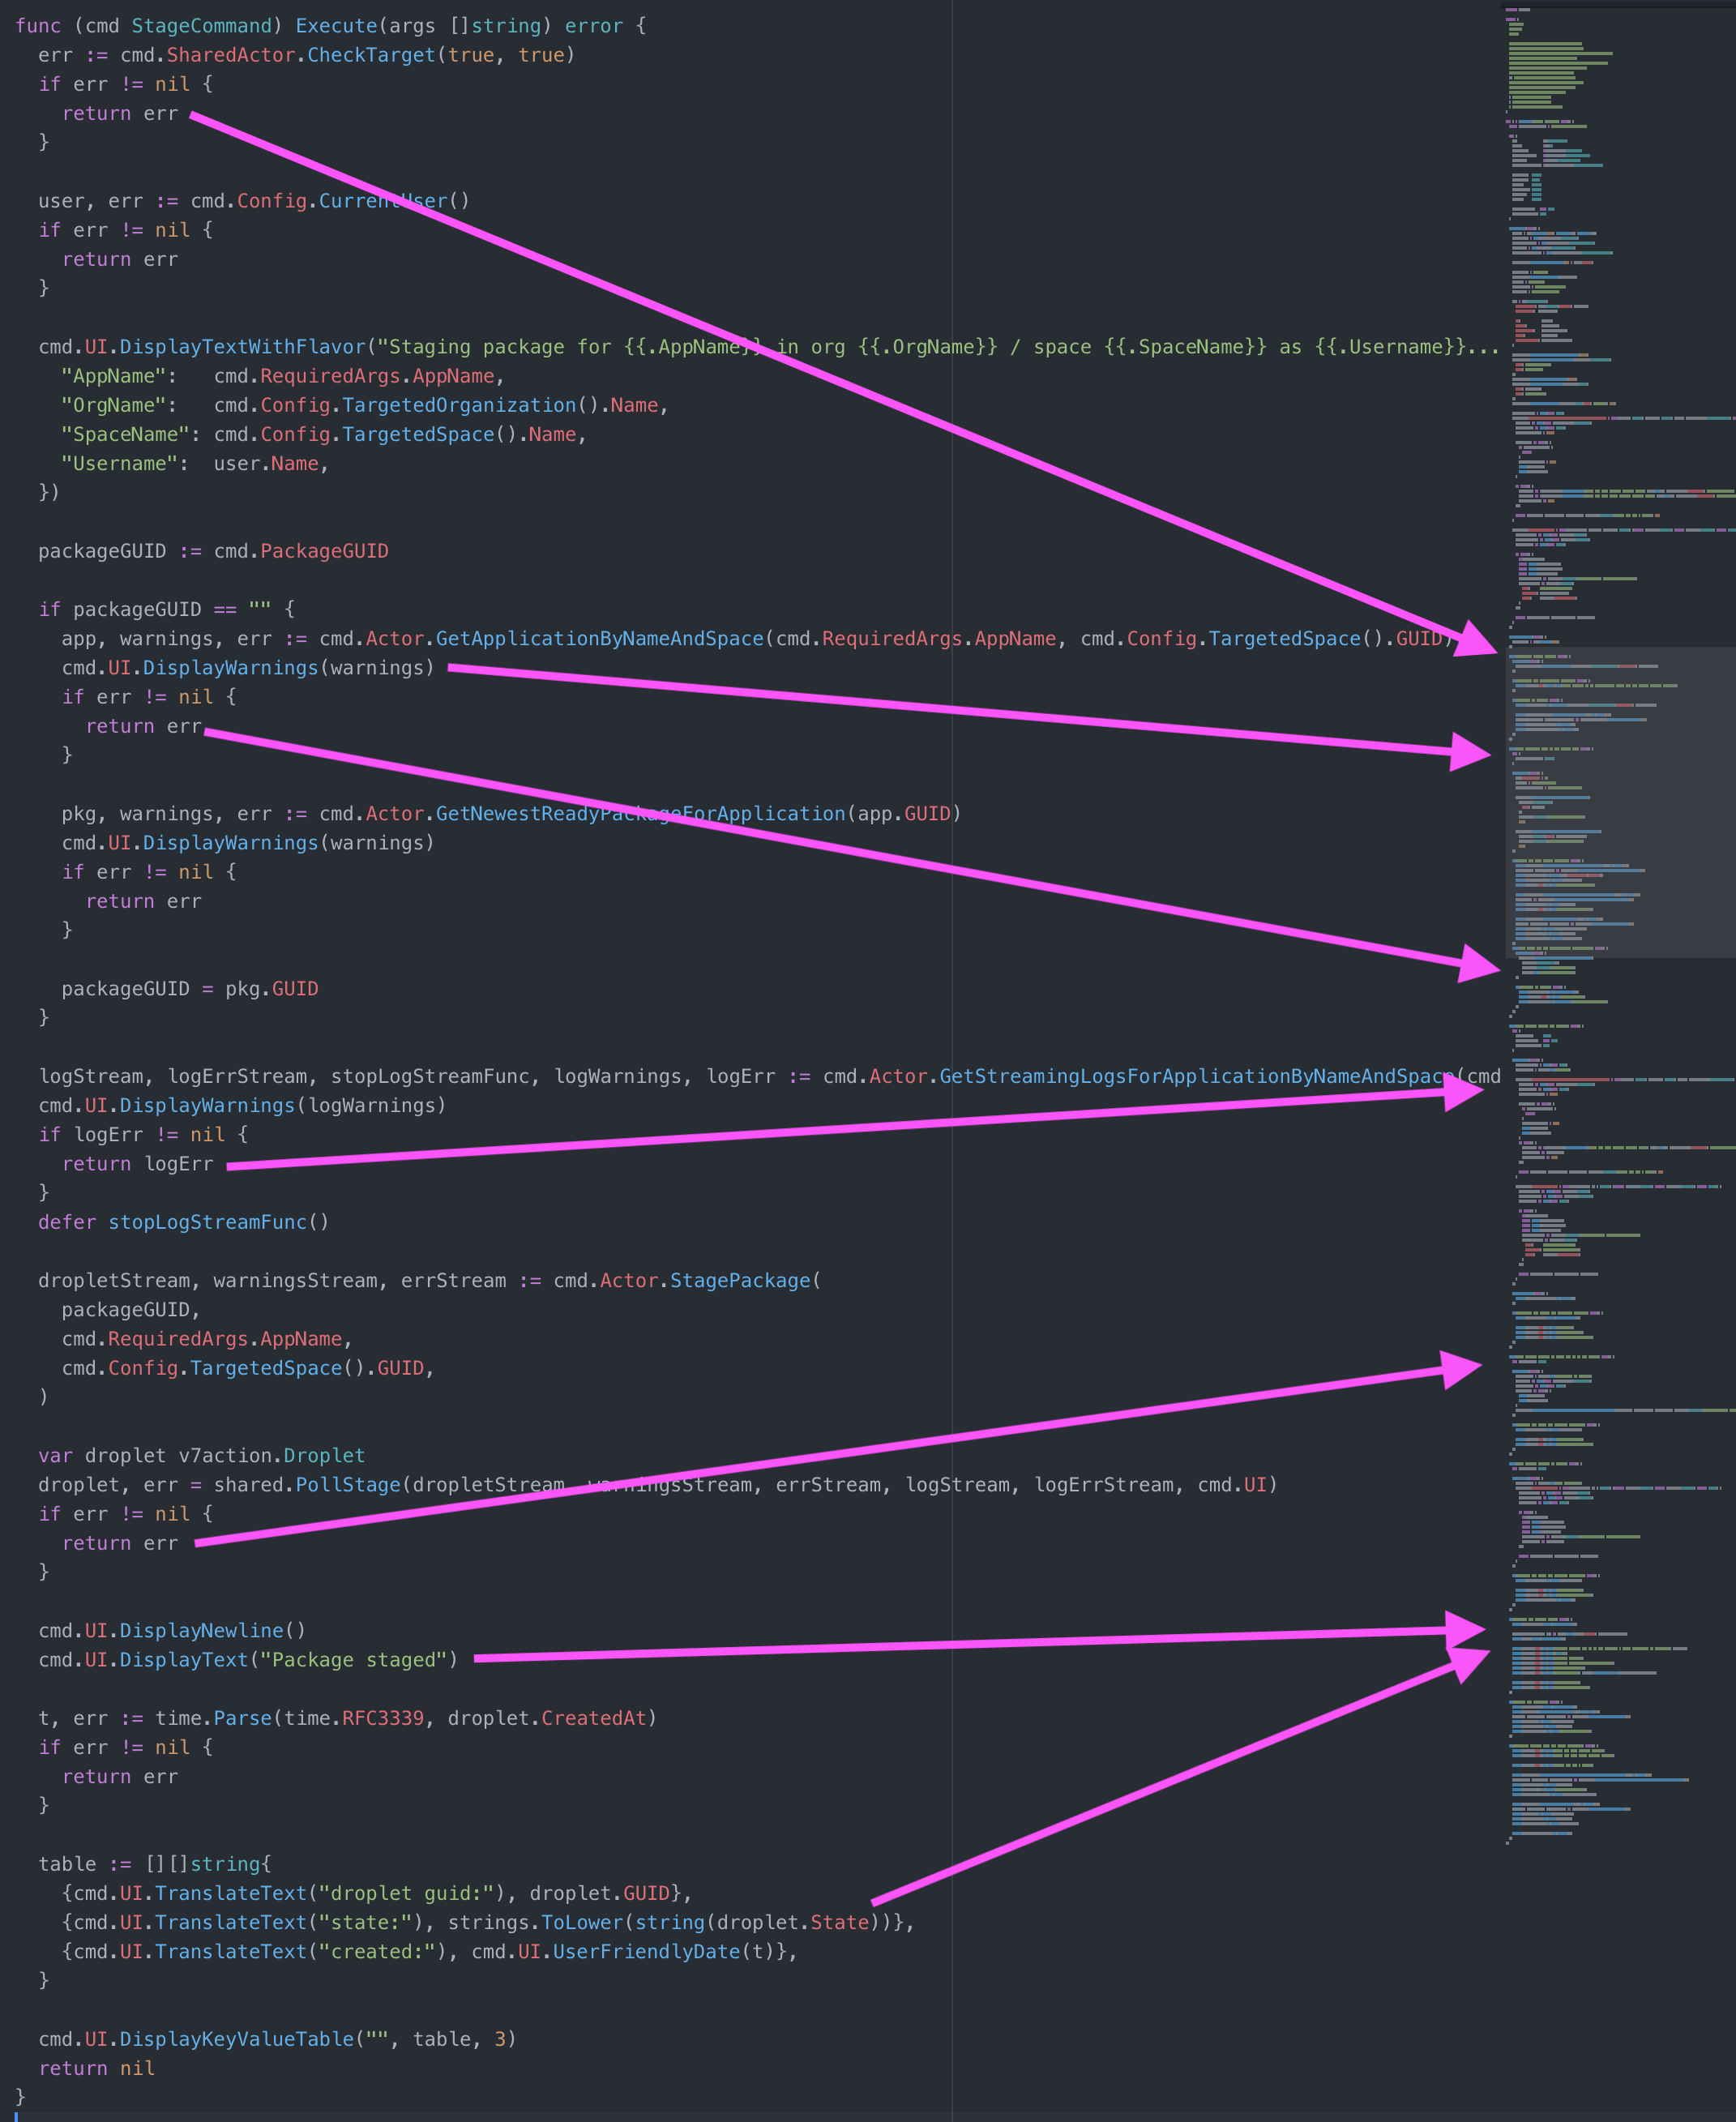 The code is to the left, and the tests are to the right.  Note that the tests are much too large (>300 lines) to fit in the image, so we use a minimap. The pink arrows indicate where in the test file that particular line of code is tested.